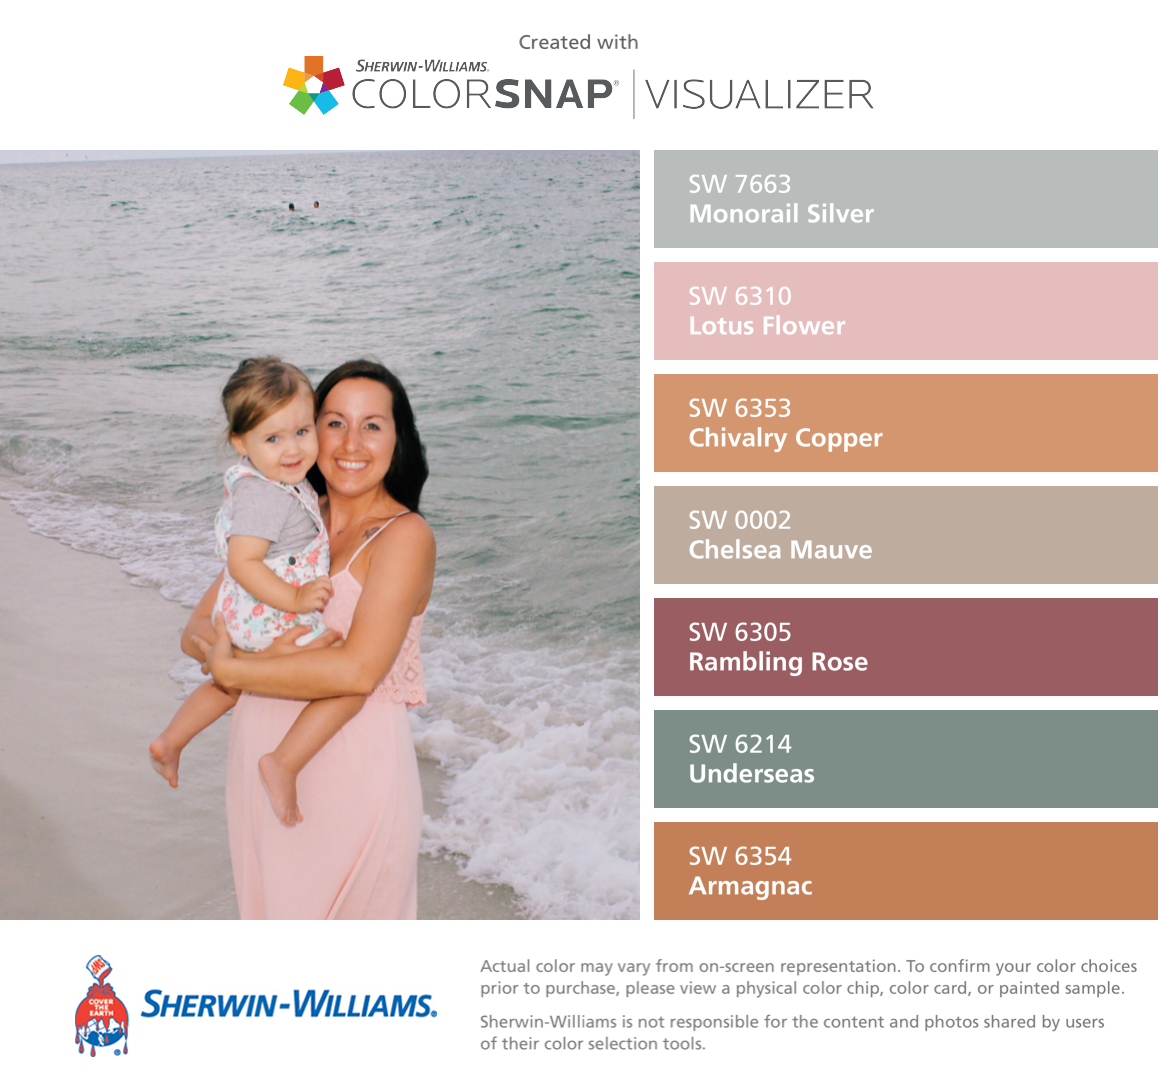 I found these colors with colorsnap visualizer chelsea mauve i found these colors with colorsnap visualizer for iphone by sherwin williams monorail silver sw 7663 lotus flower sw 6310 chivalry copper sw 6353 izmirmasajfo